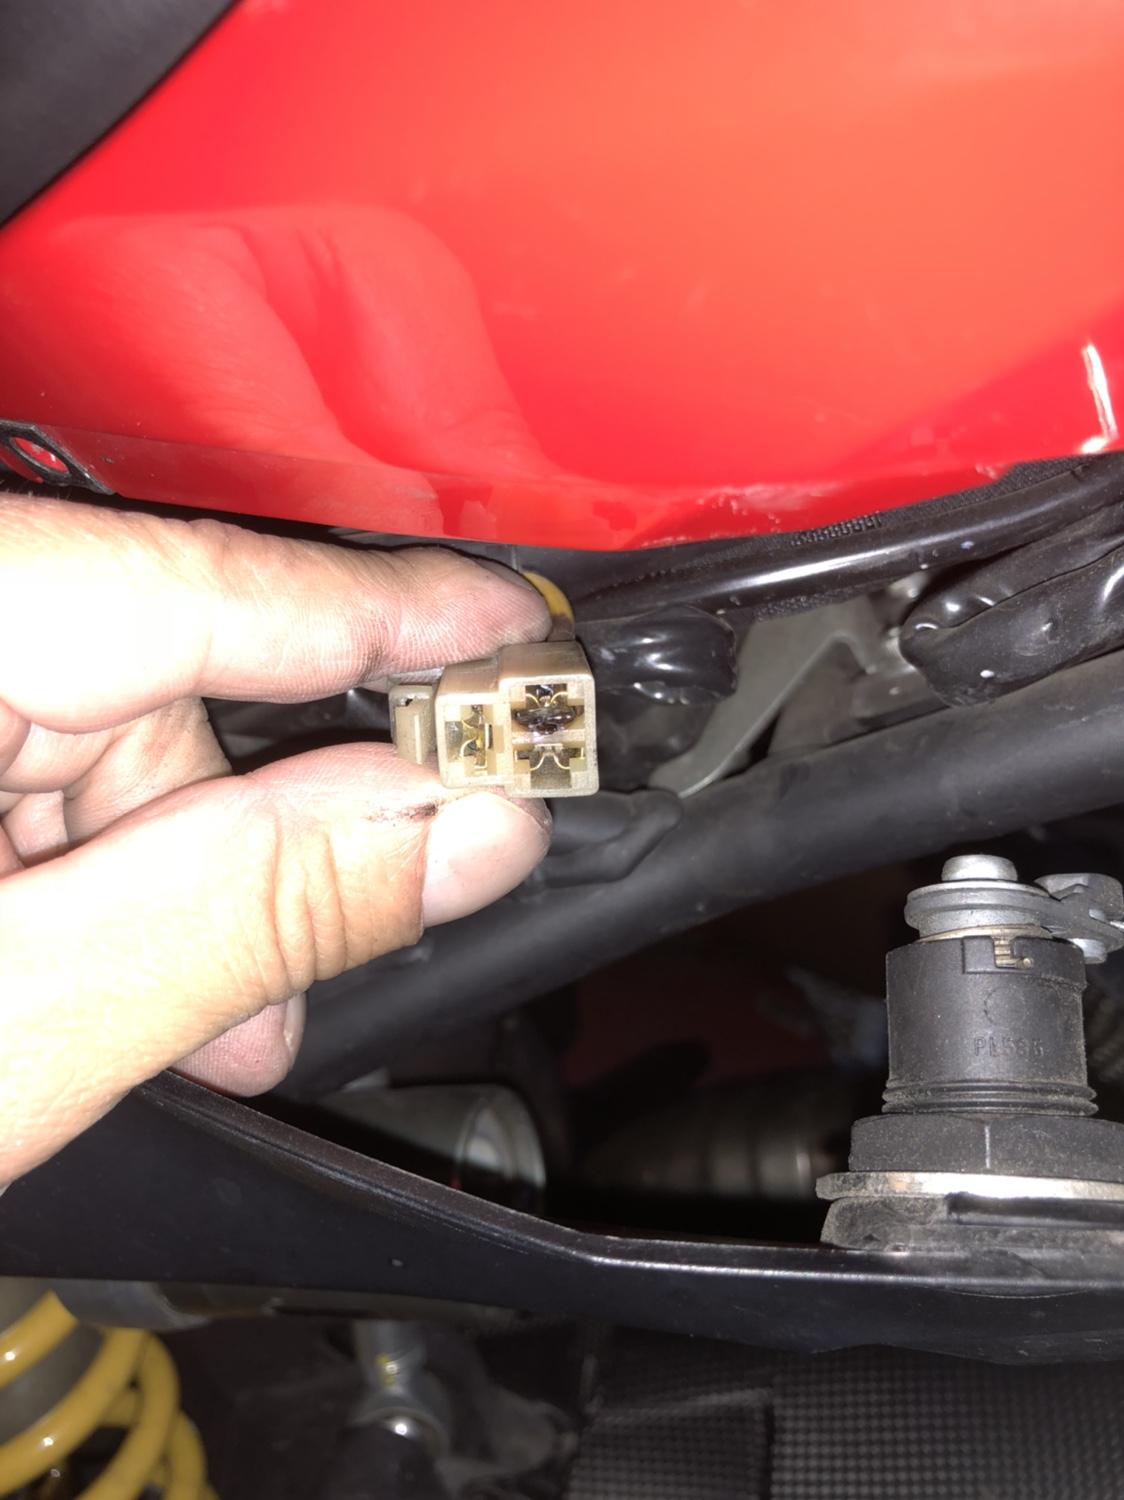 My Bikes Eating Batteries - Page 2 - Ducati Ms